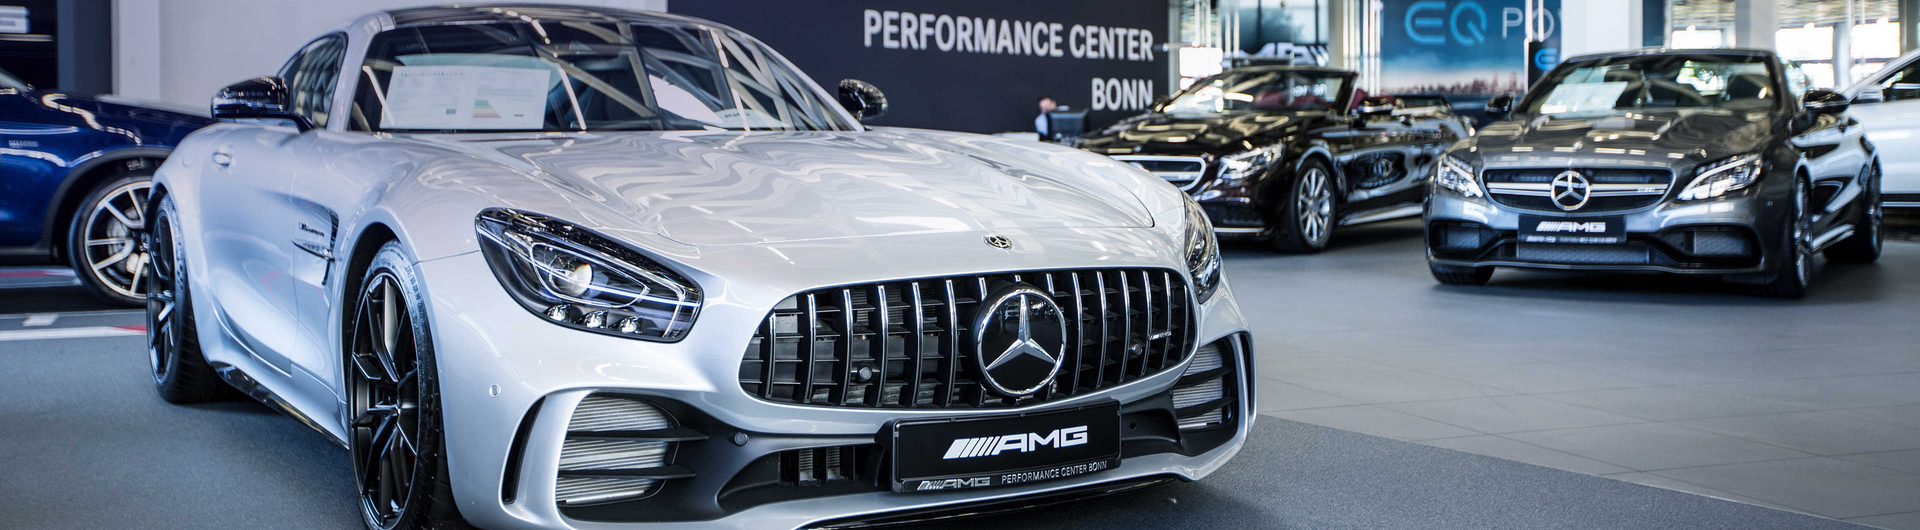 AMG Performance Center Bonn